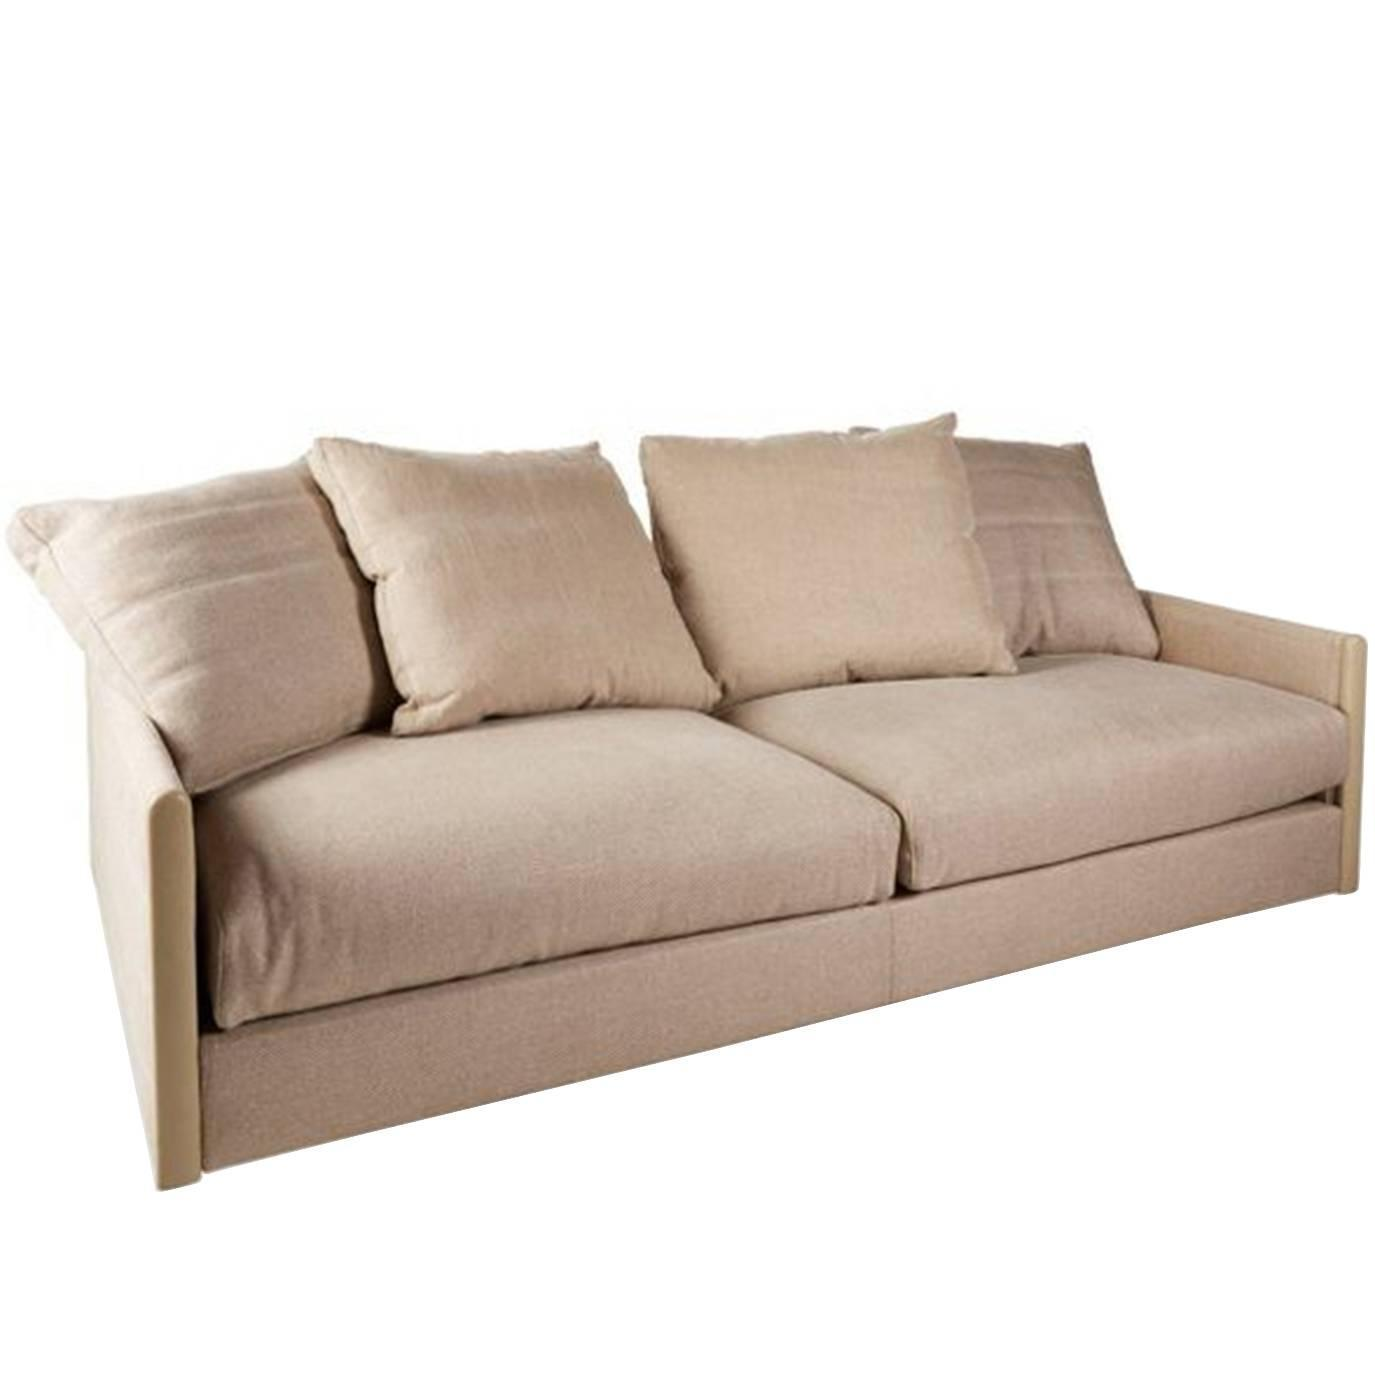 Giorgetti wally sofa in fabric for sale at 1stdibs for Fabric sofas for sale